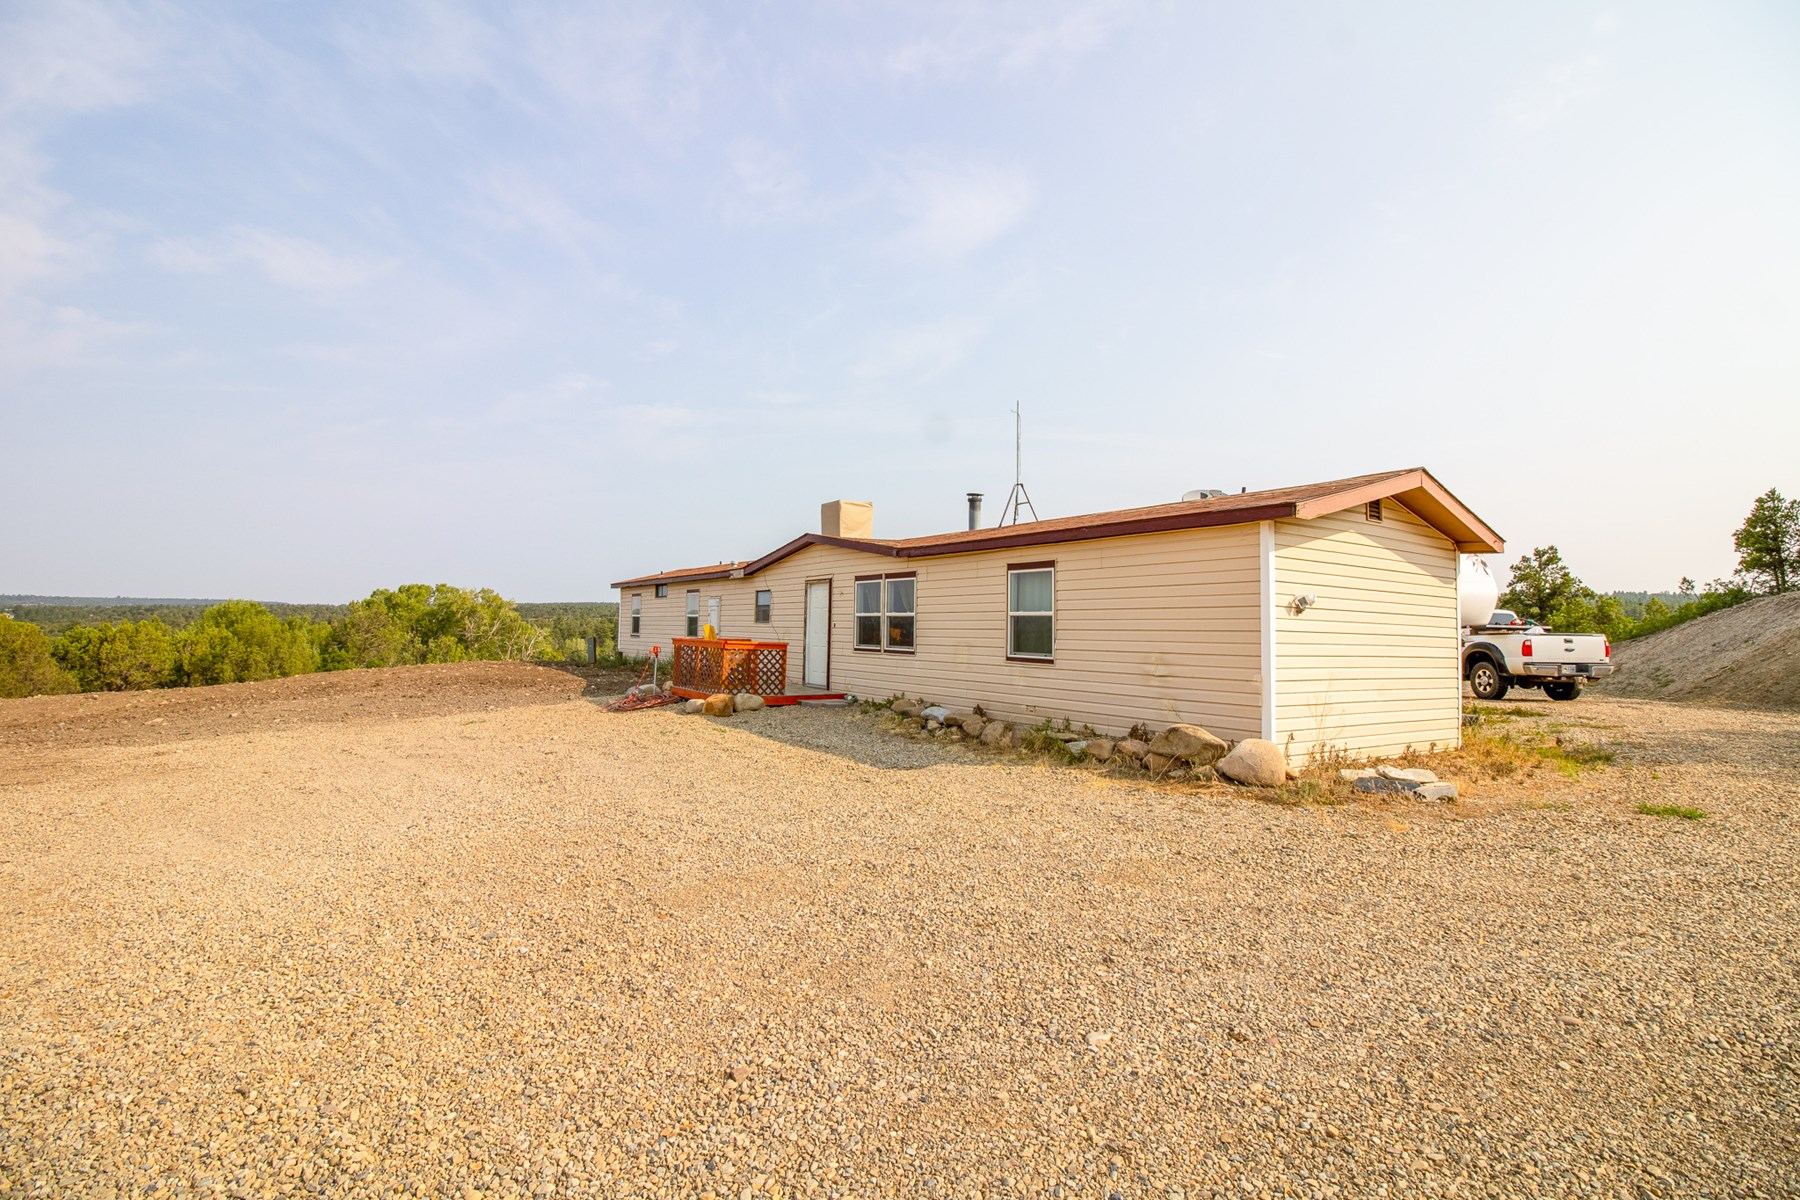 Mobile Home For Sale With 5+ Acres in Mancos, CO!